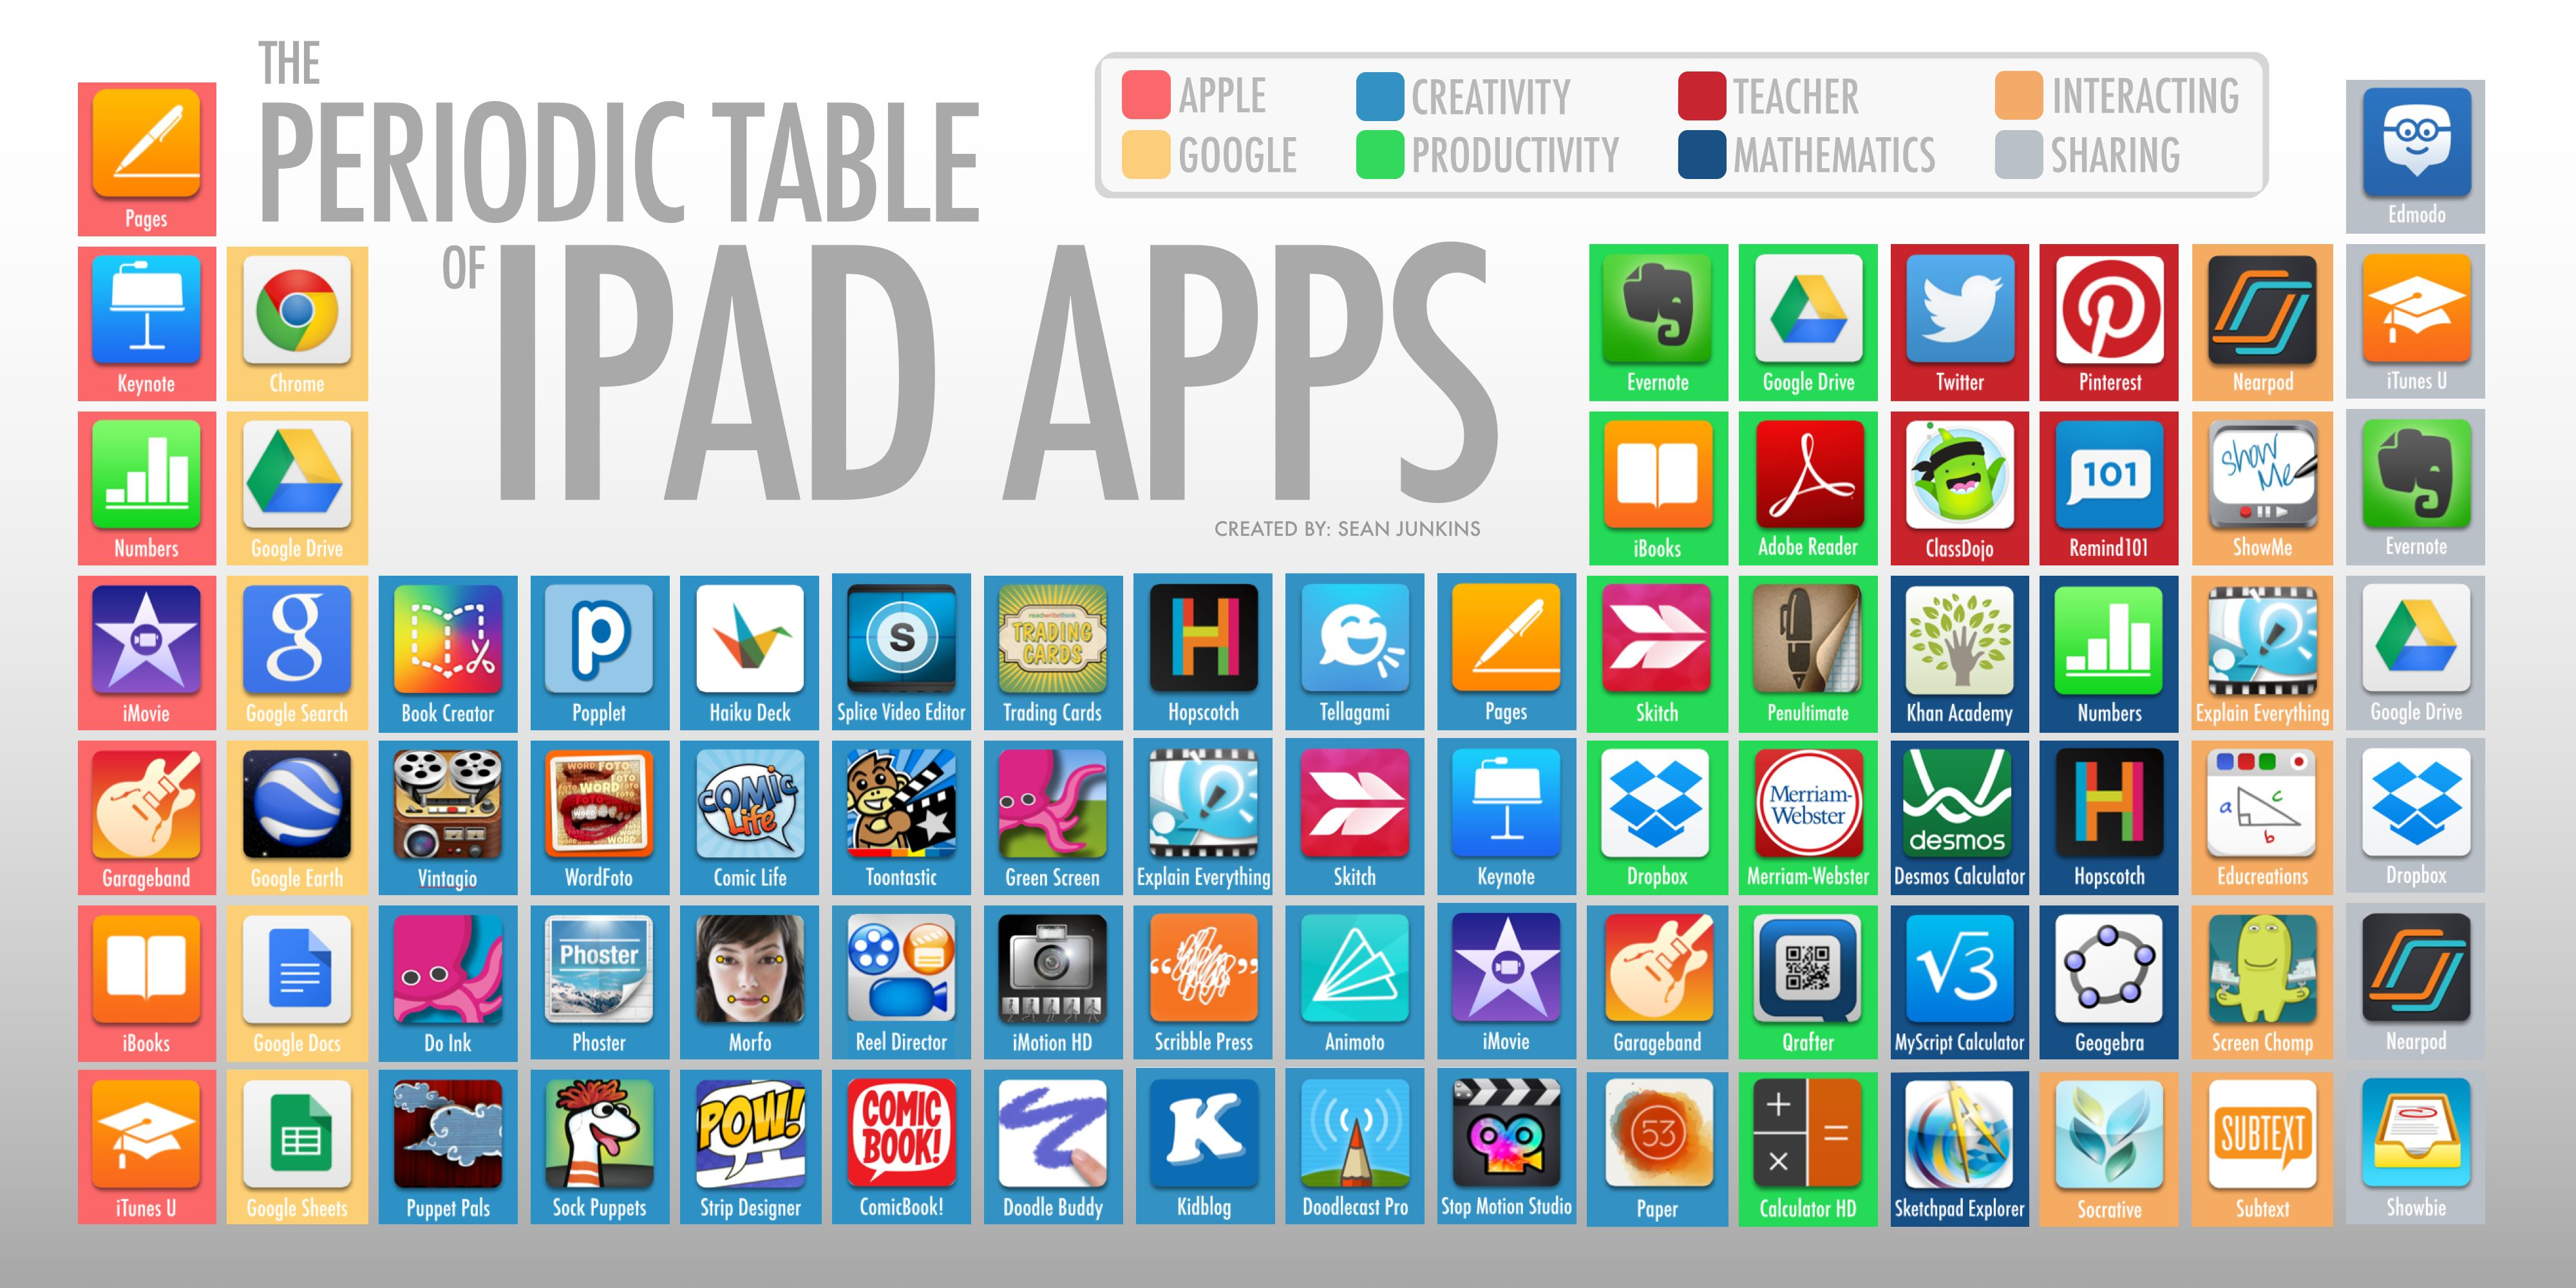 Periodic table ipad apps great organization of apps by apple periodic table ipad apps great organization of apps by apple google creativity gamestrikefo Gallery